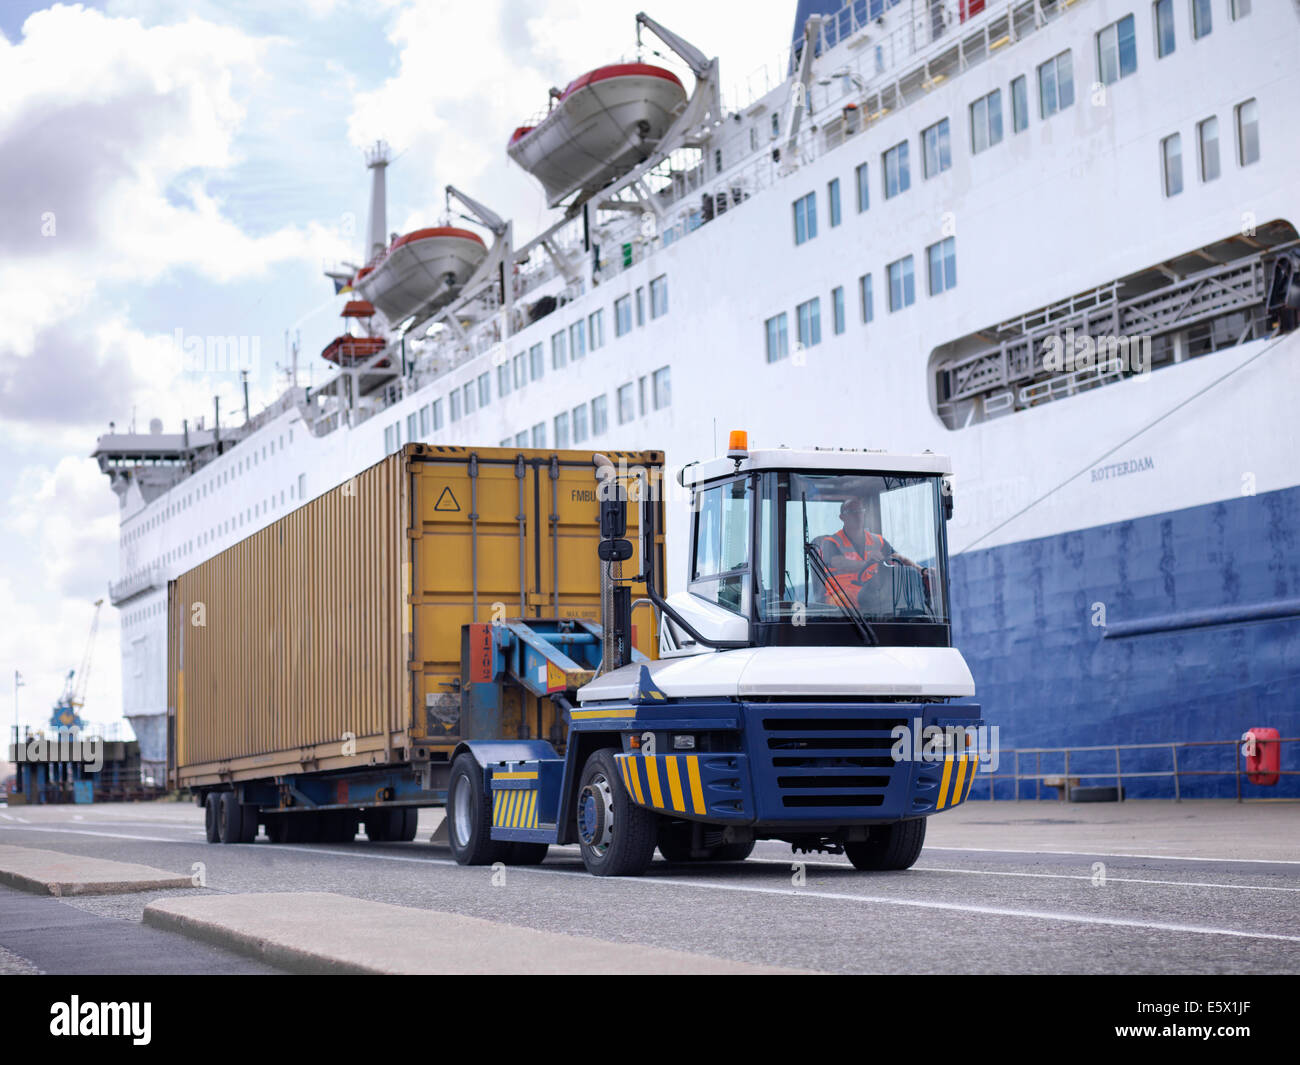 Shipping container and truck by ship in port - Stock Image